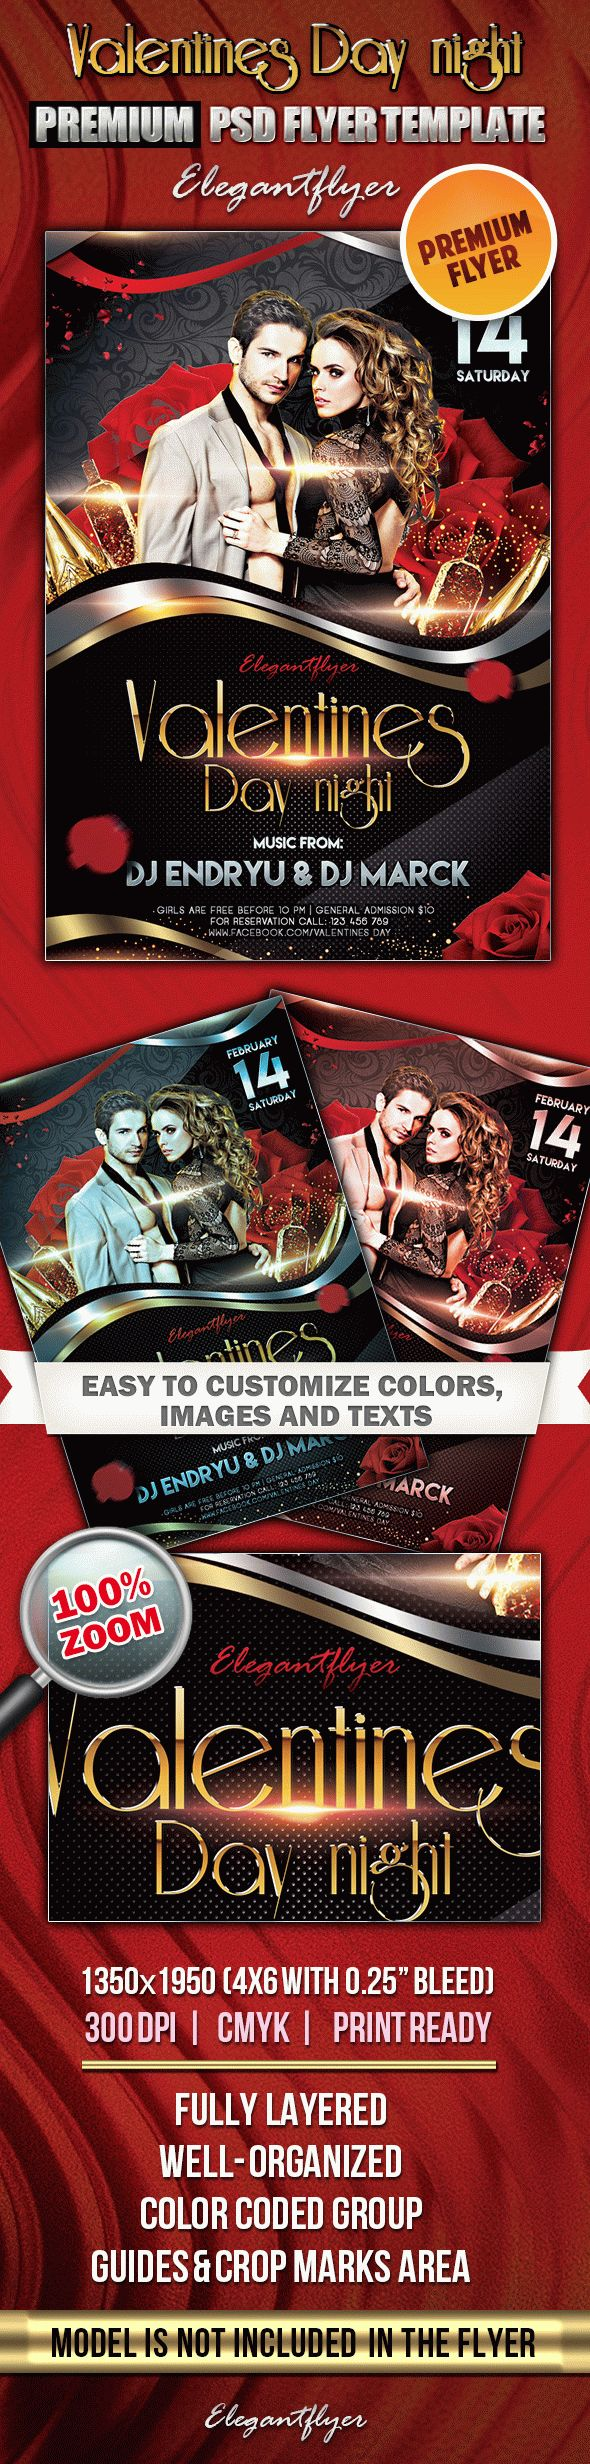 Valentines Day night 2 – Premium Club flyer PSD Template